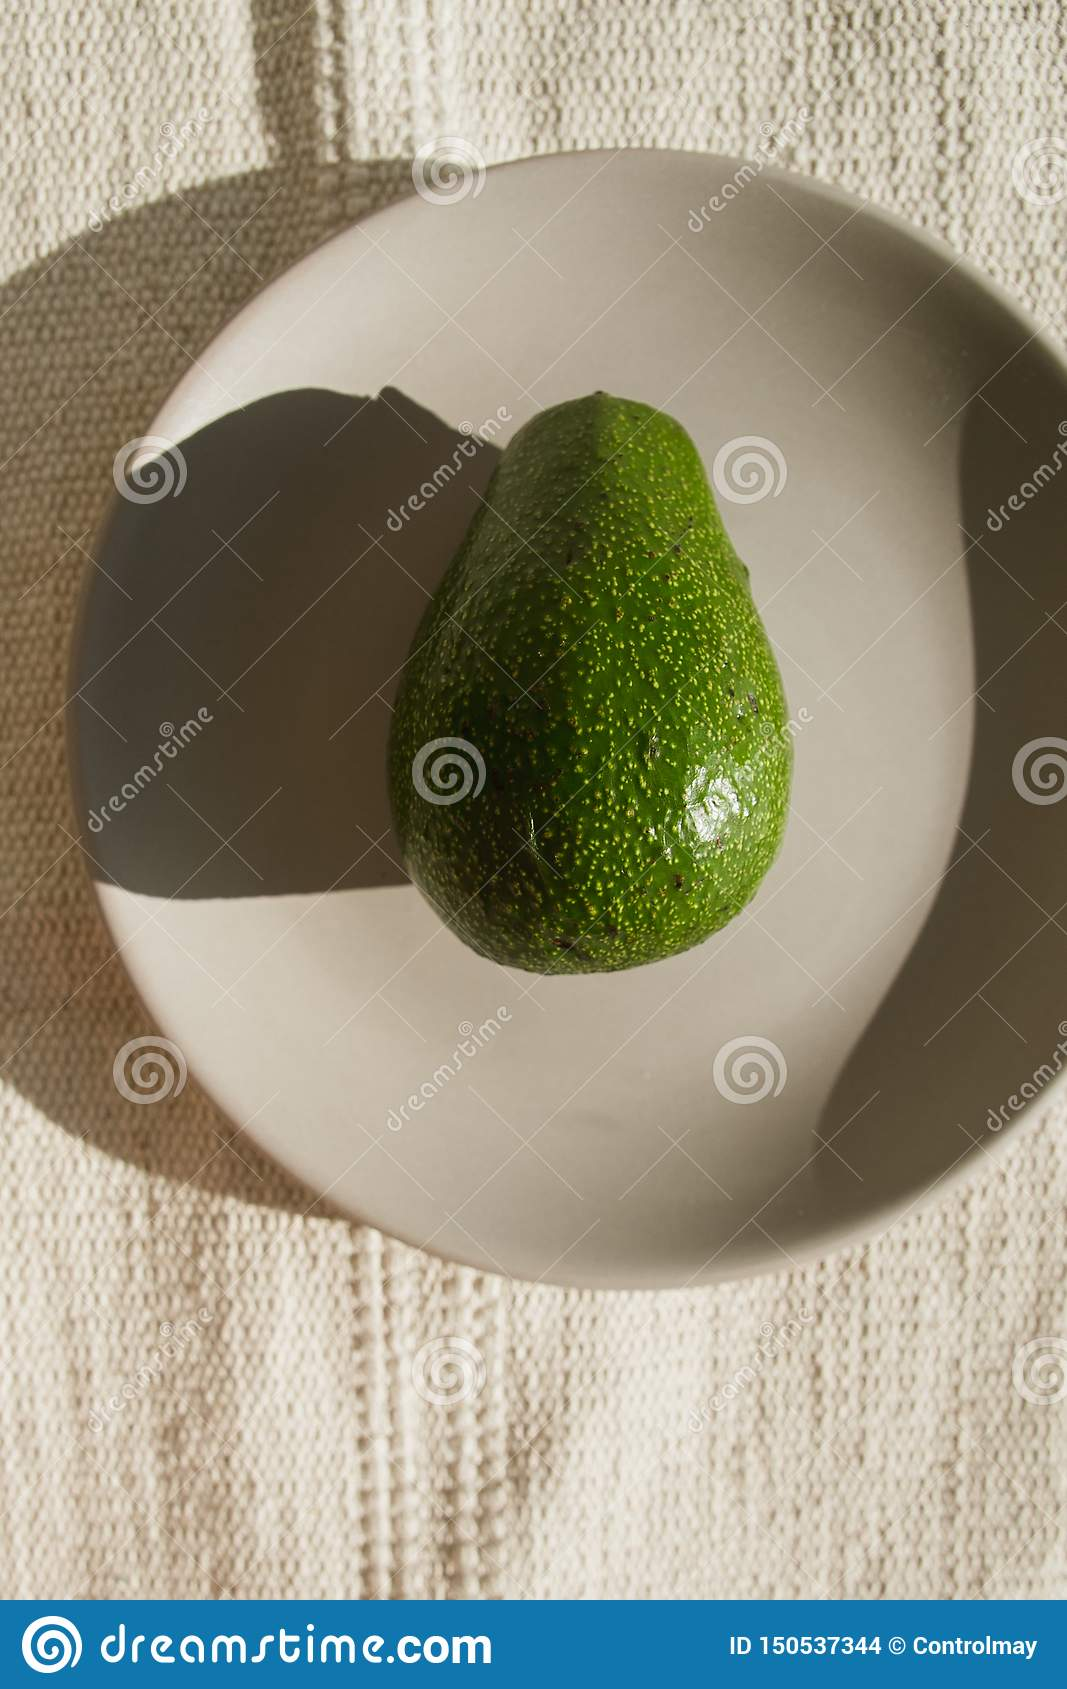 Green whole ripe avocado lies on a gray ceramic plate in the sun. One avocado is on a beige natural carpet in a hard light